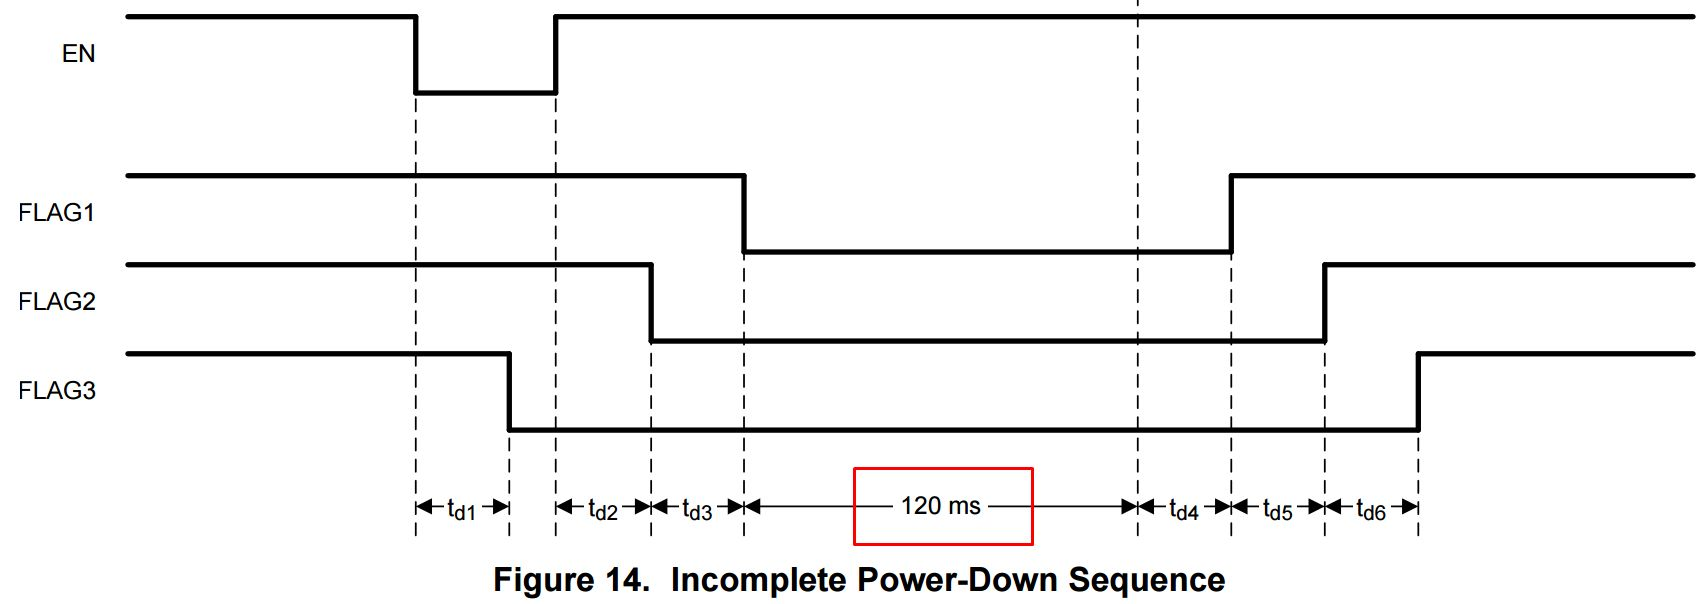 Lm3880 incomplete power down sequence sequencers forum please let me know the variation in 120ms at incomplete power down sequence i know it cant be guaranteed but is it almost the same variation with timer pooptronica Choice Image